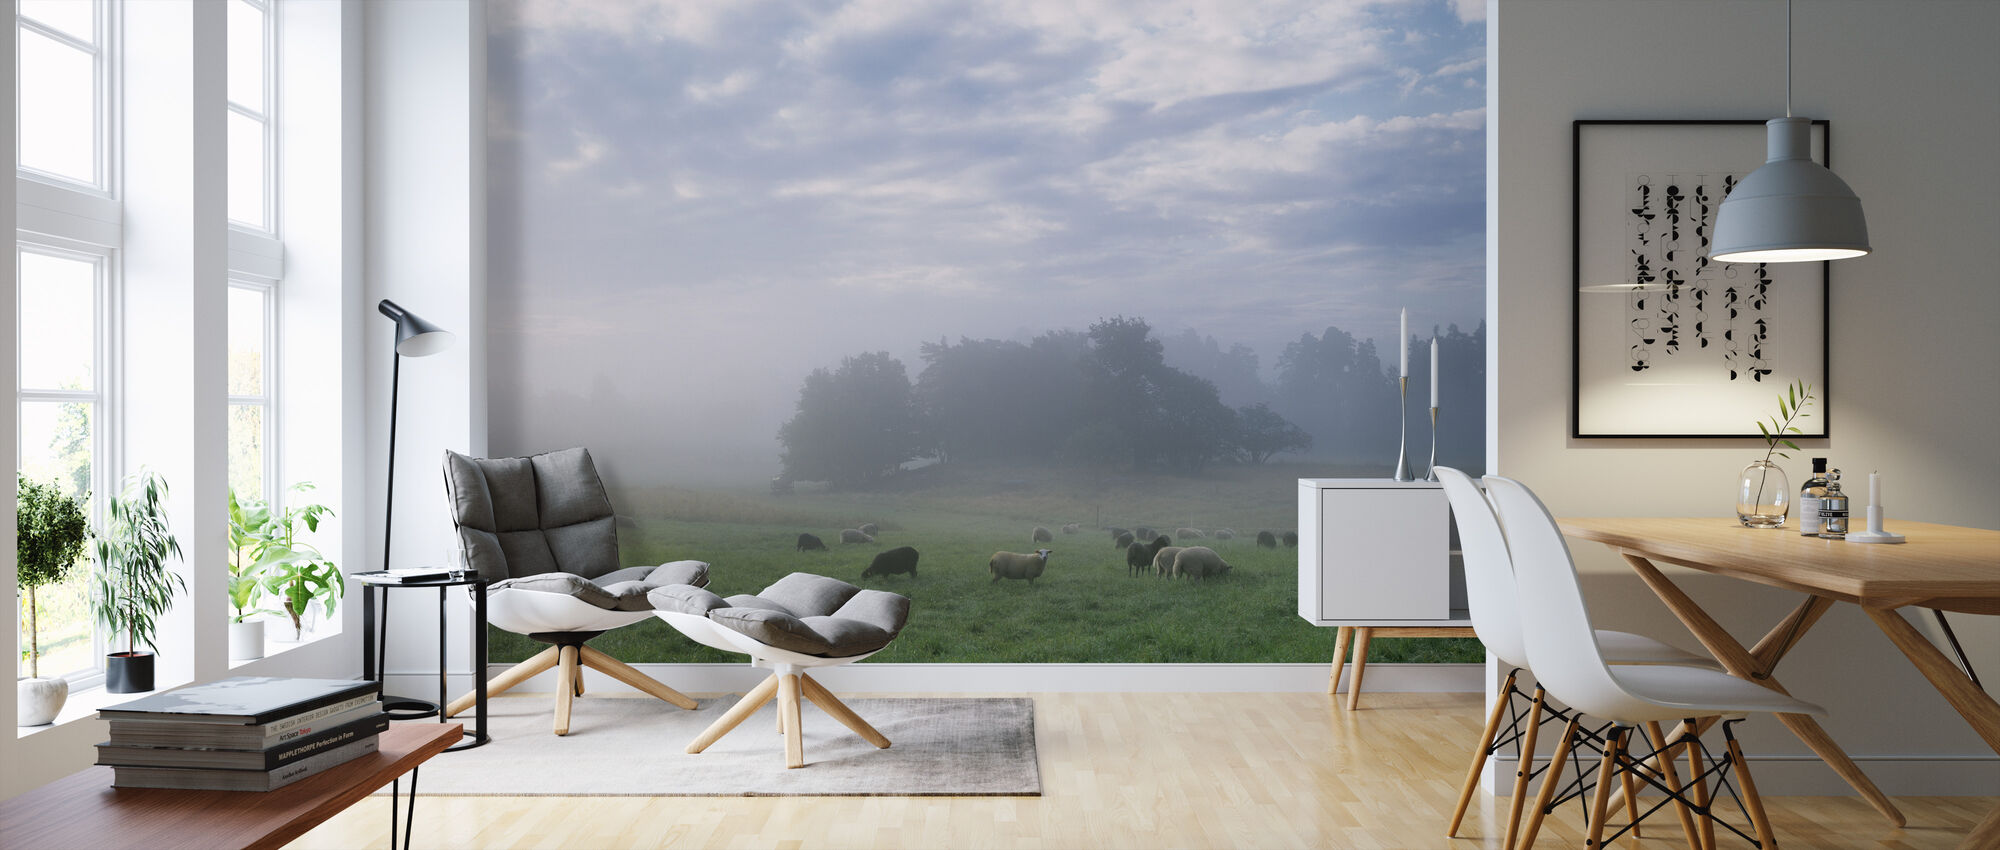 Sheep on Pasture Field in Morning Fog - Wallpaper - Living Room